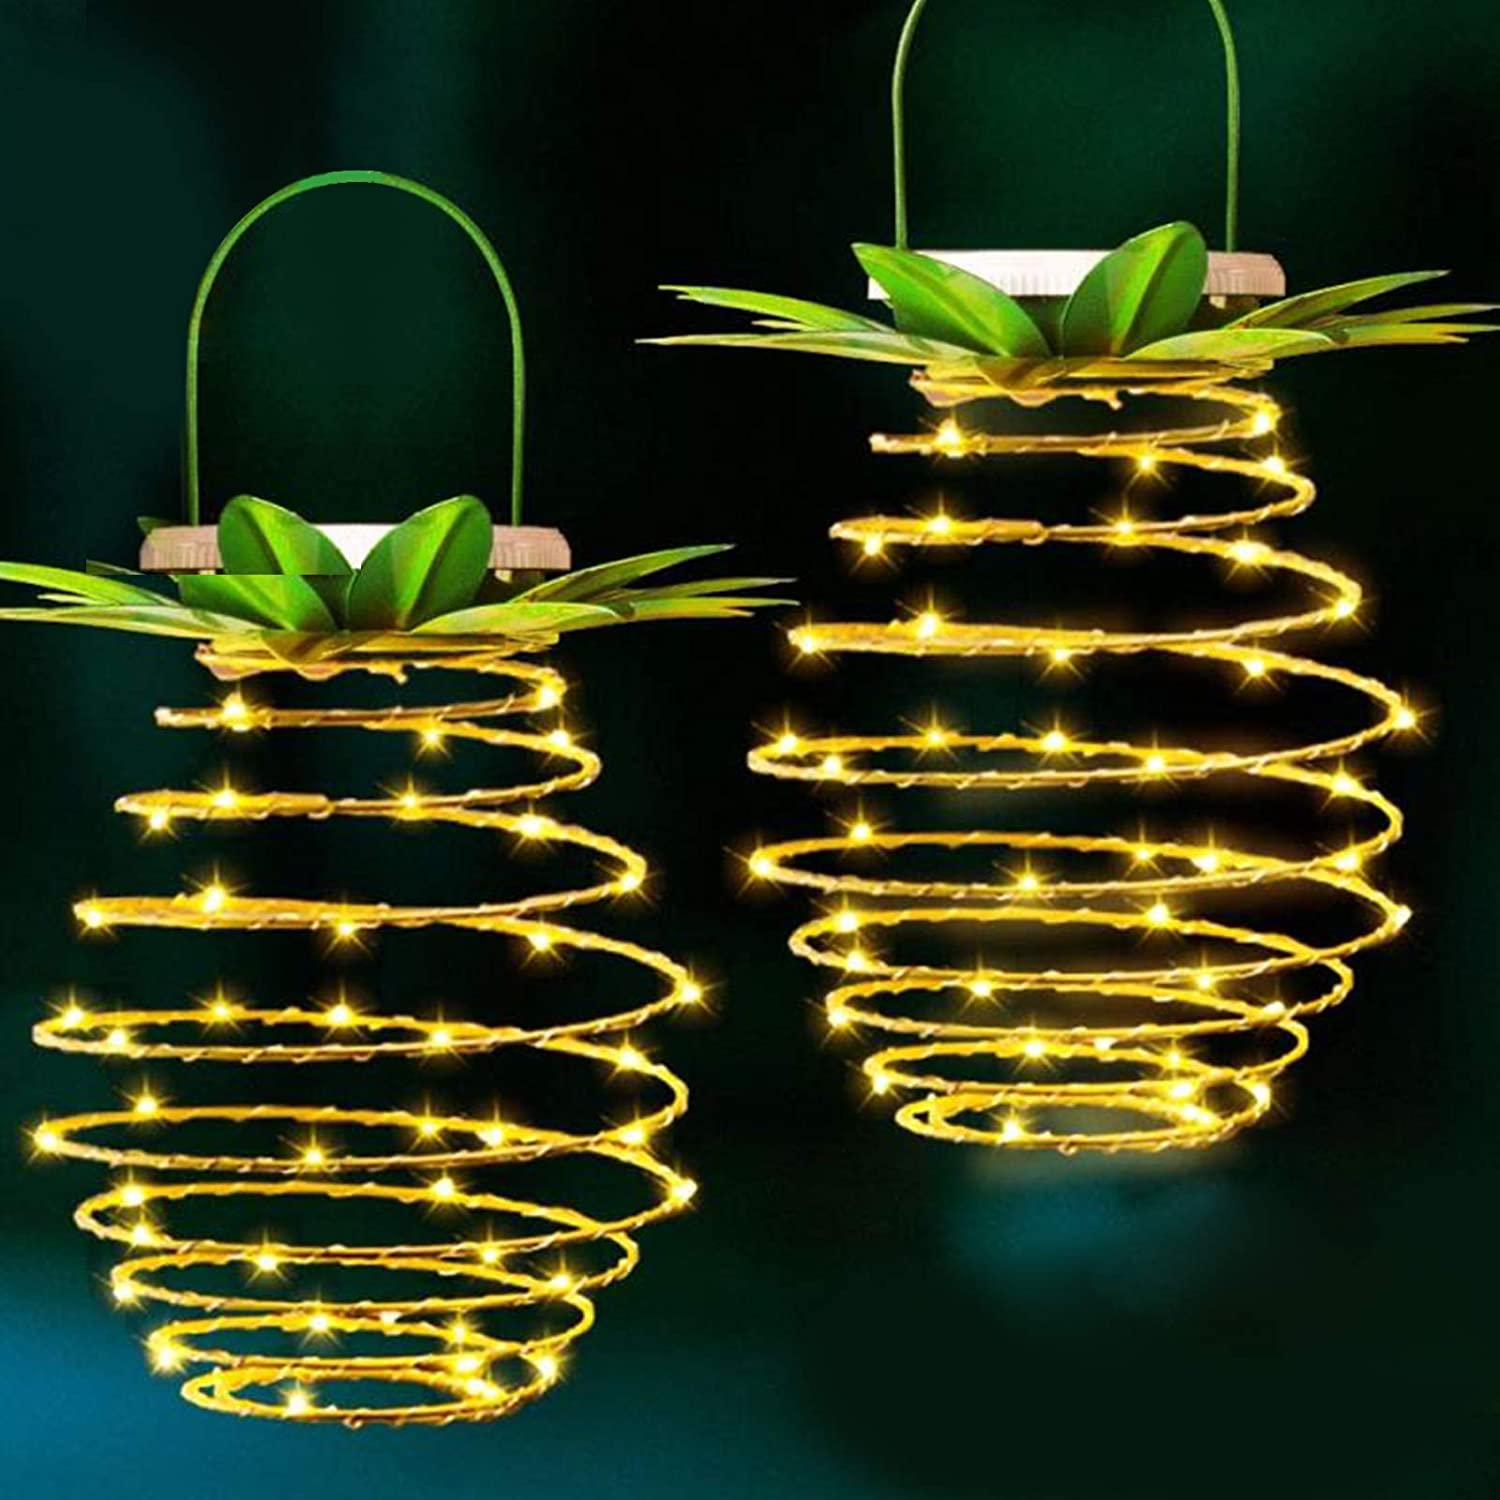 Upgraded 60LEDS Pineapple Solar Lights,Solar Hanging Pineapple Outdoor Lantern,Solar Led Warm Fairy String for Patio Path Home Décor Lighting .(2-Pack)